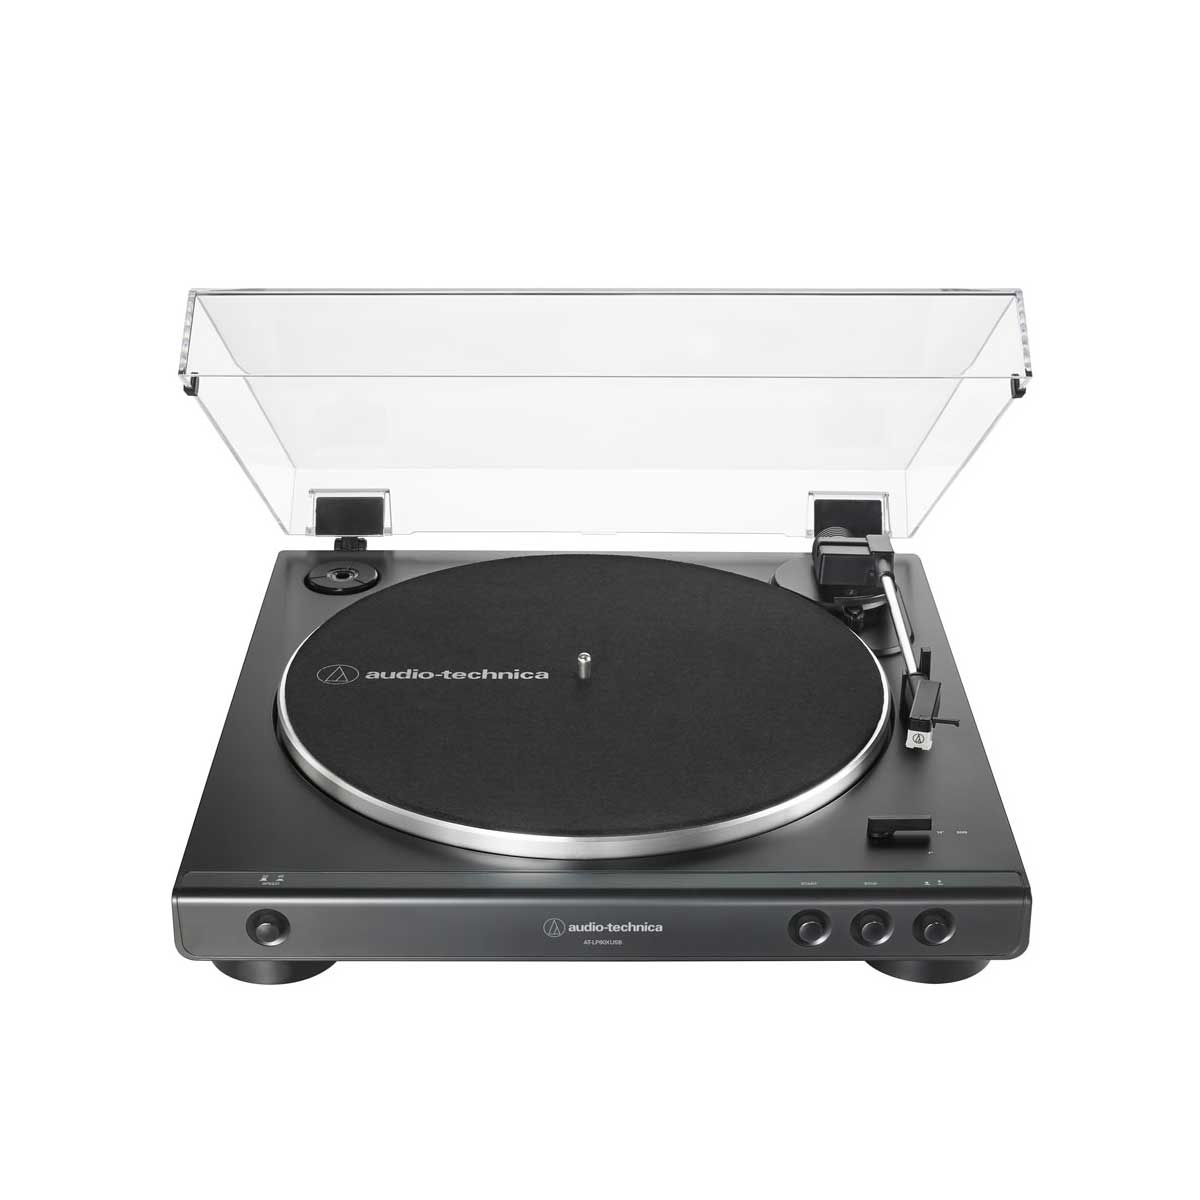 Audio-Technica LP60xBT Fully Automatic Belt-Drive Stereo Turntable with Bluetooth® (Black)